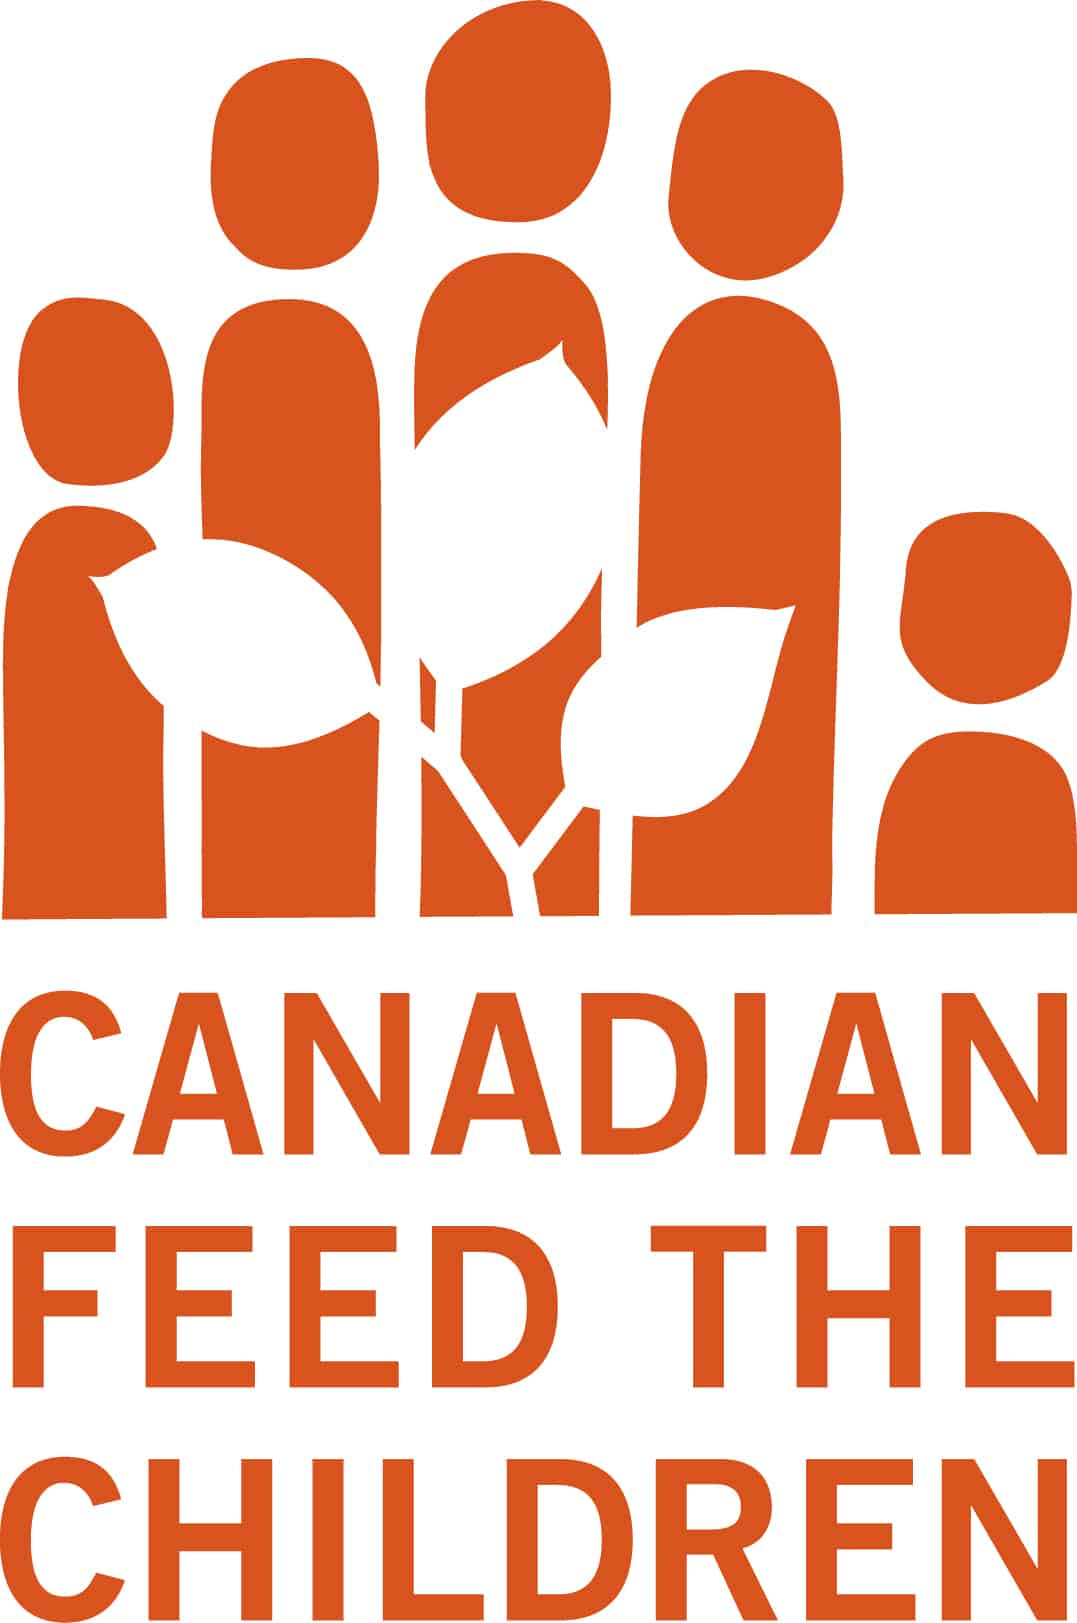 Canadian Feed The Children logo